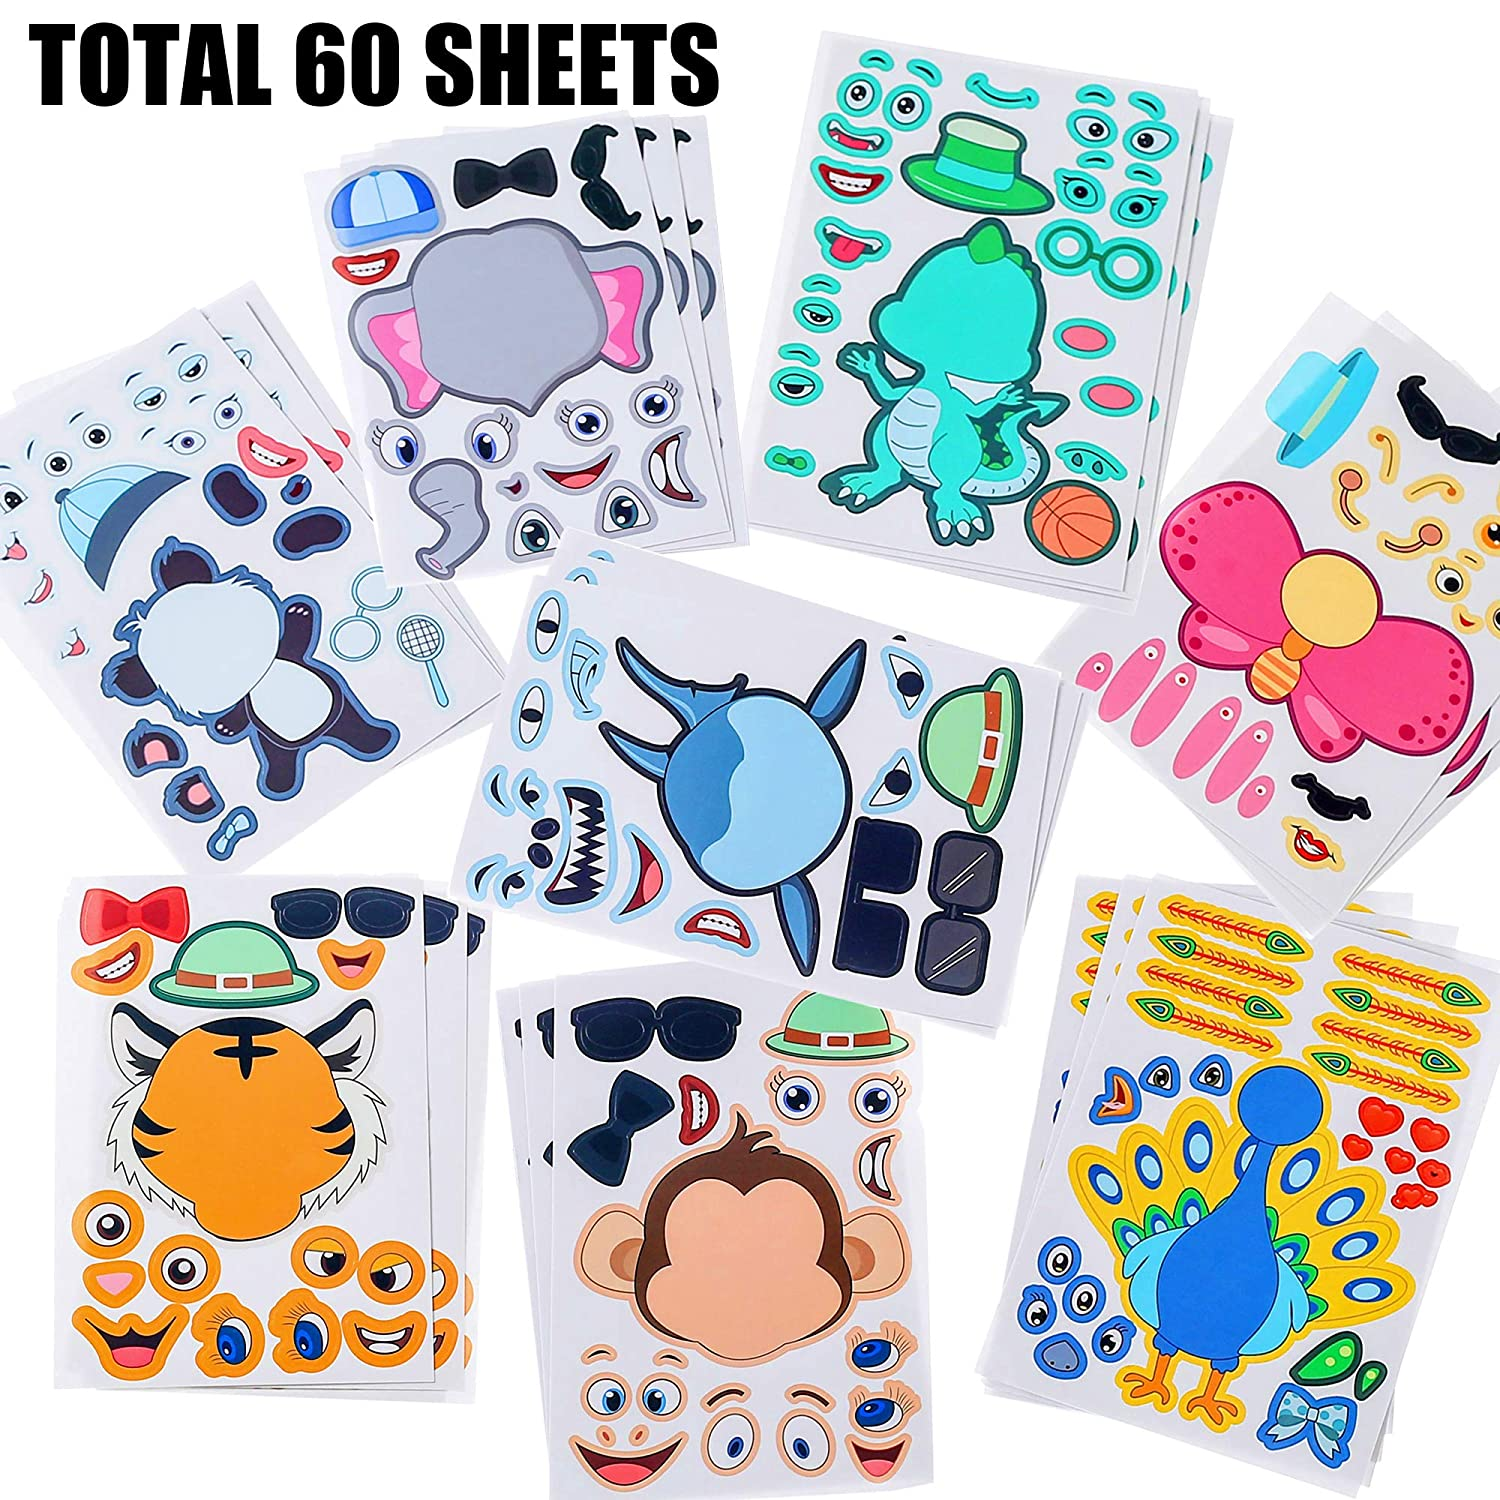 Sinceroduct Make Your Own Stickers,60 PCS Make-a-Face Stickers with 20 Designs Animals Stickers for Kids.Party Favors,Gift of Festival,Rewards,Art Craft.